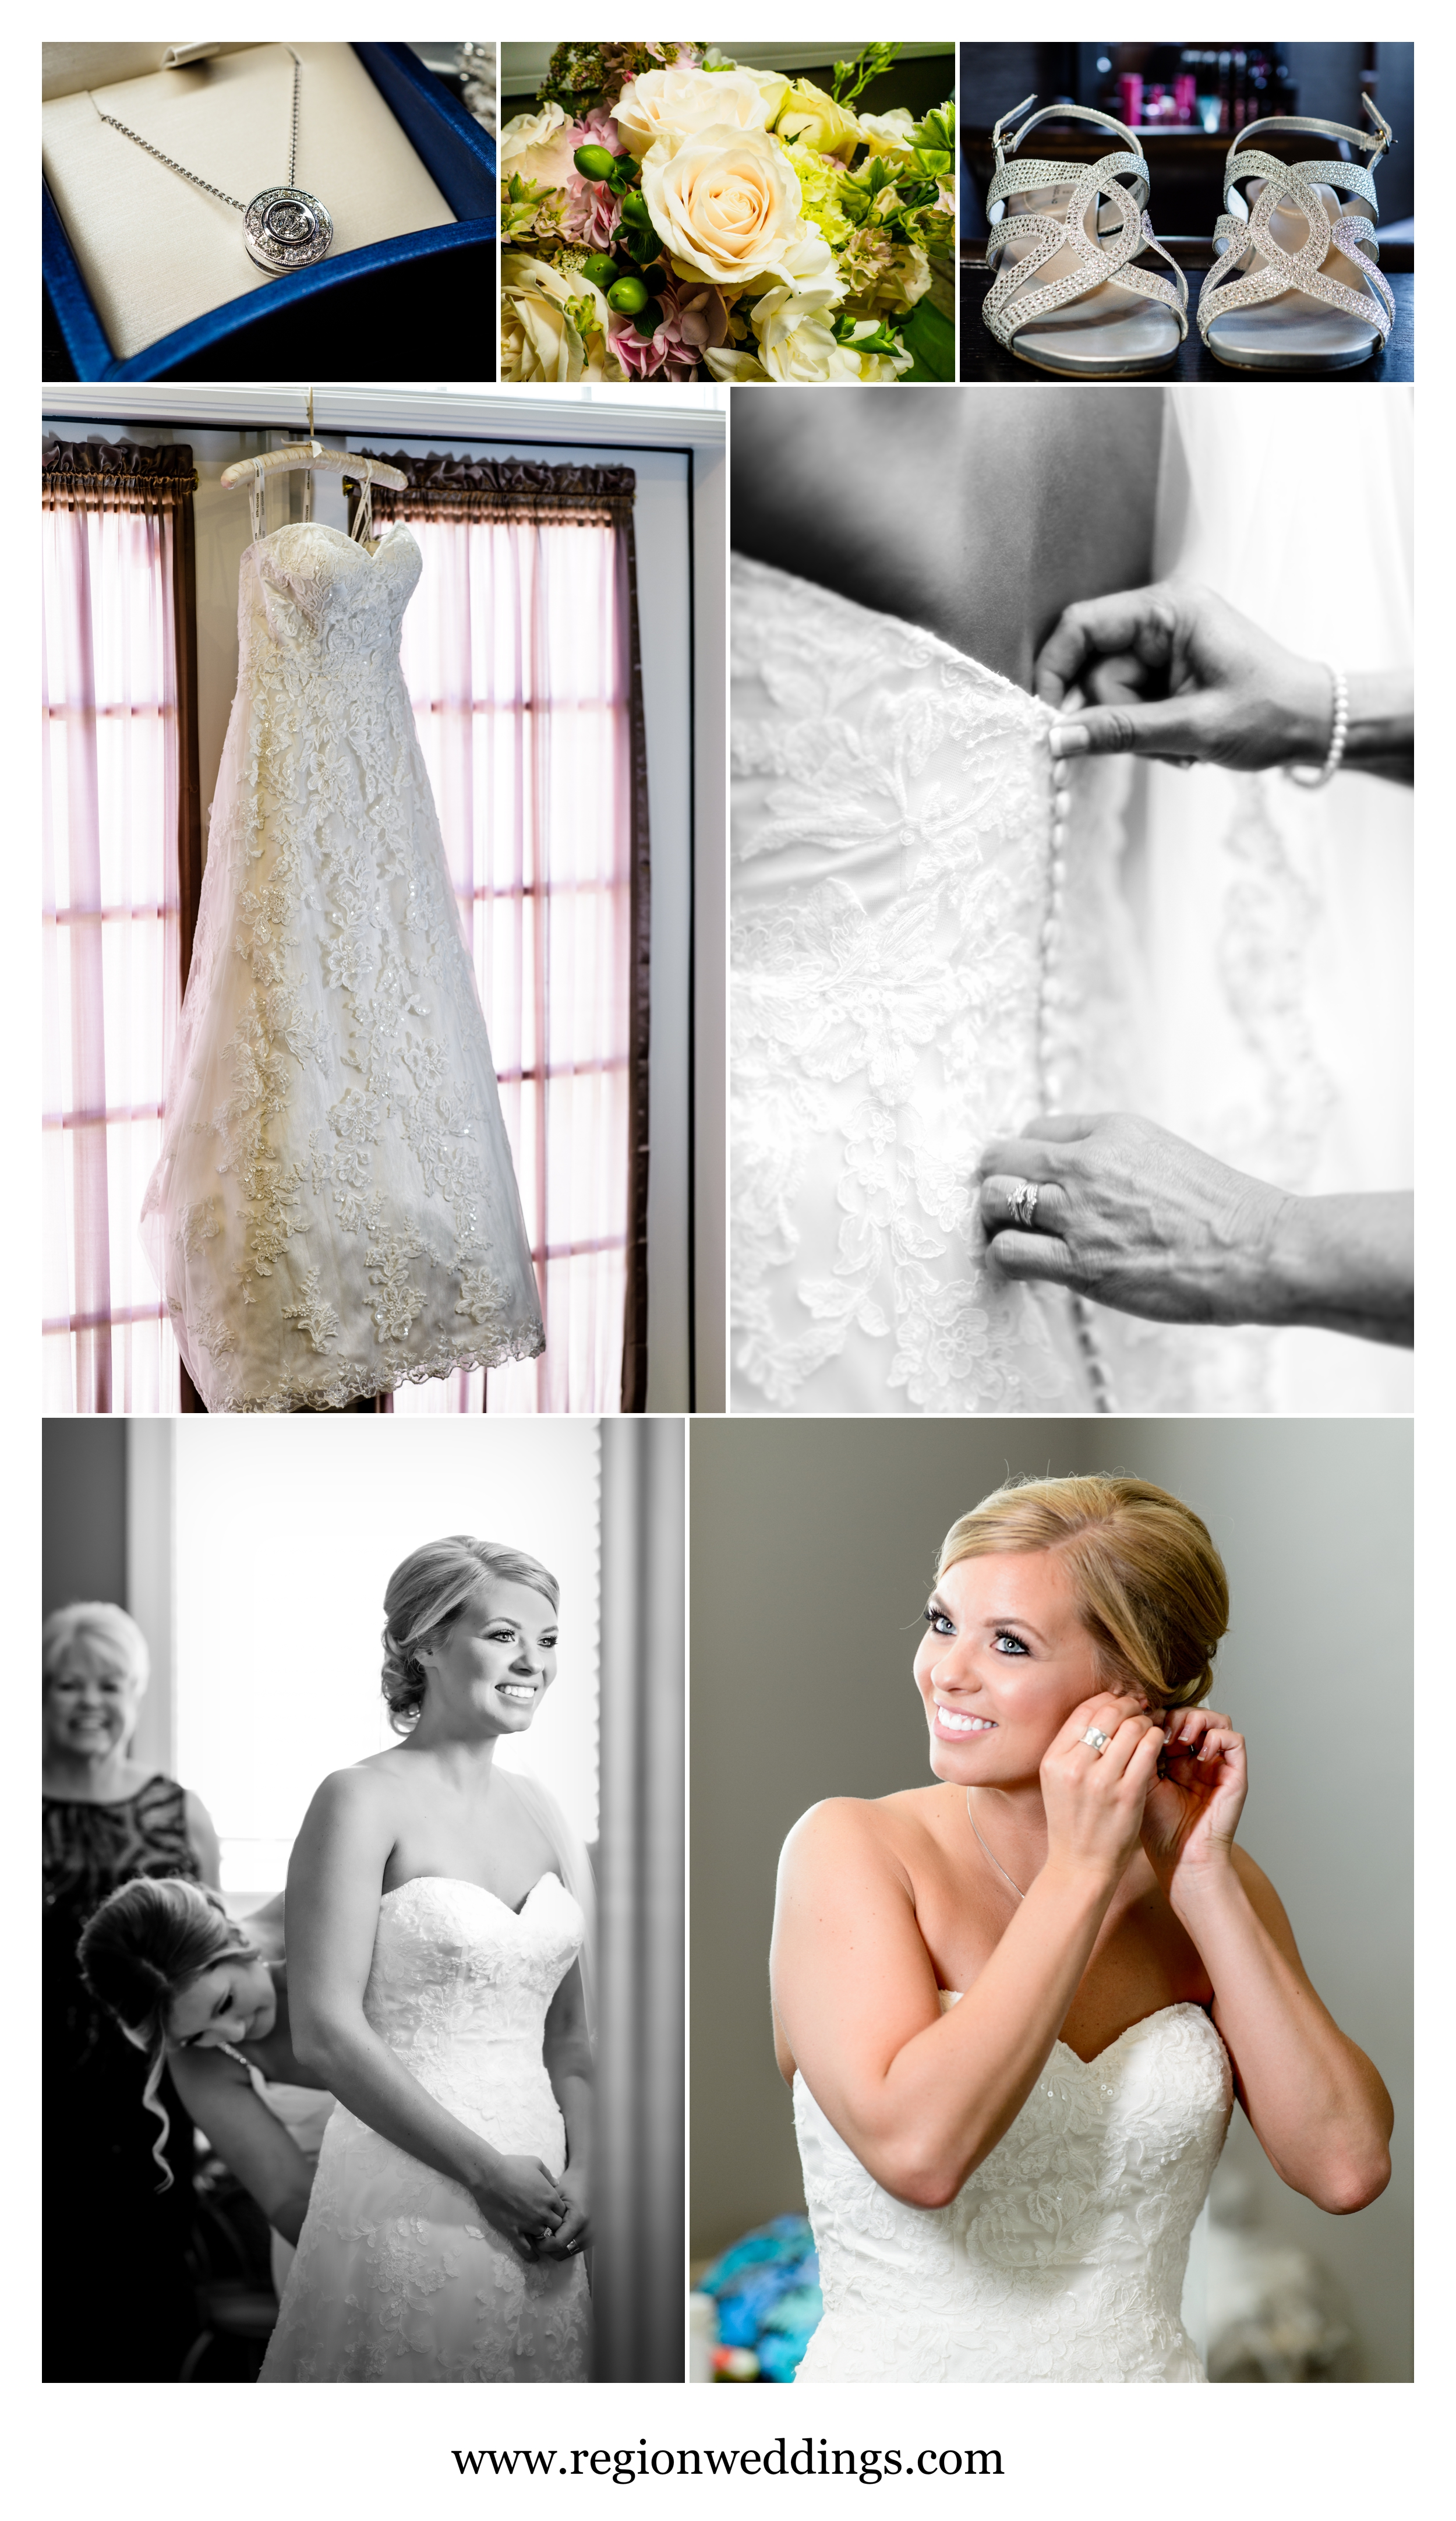 Bridal prep at the bridal suite at Aberdeen Manor in Valparaiso.